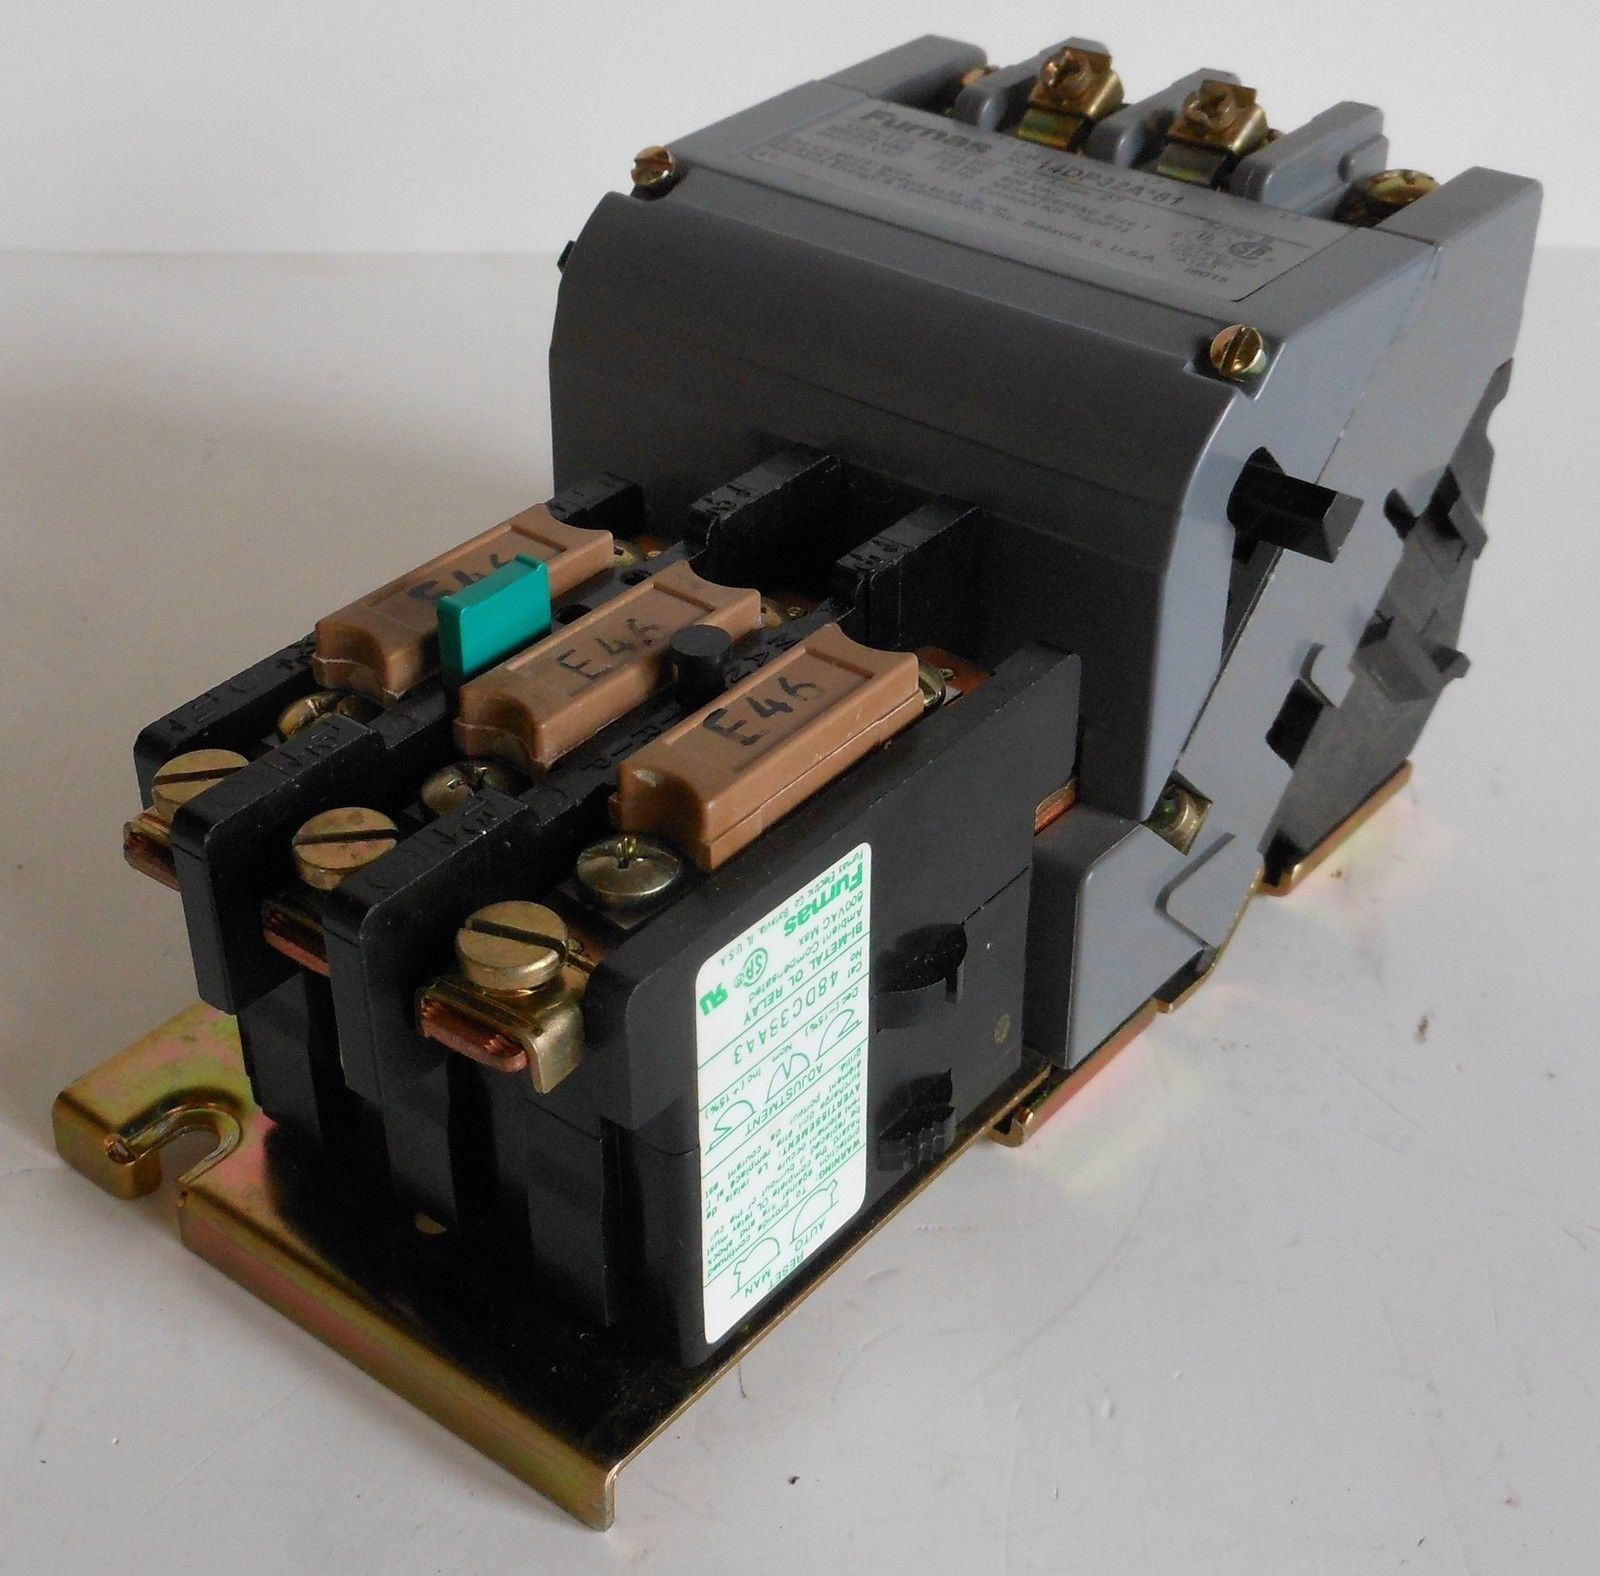 Siemens 14DP32AA81 Heavy Duty Motor Starter, Ambient Compensated Bimetal Overload, Manual/Auto Reset, Open Type, 3 Phase, 3 Pole, Standard Auxiliary Contacts, 1 NEMA Size, 27A Contactor Amp Rating, 110-120/220-240 at 60Hz Coil Voltage